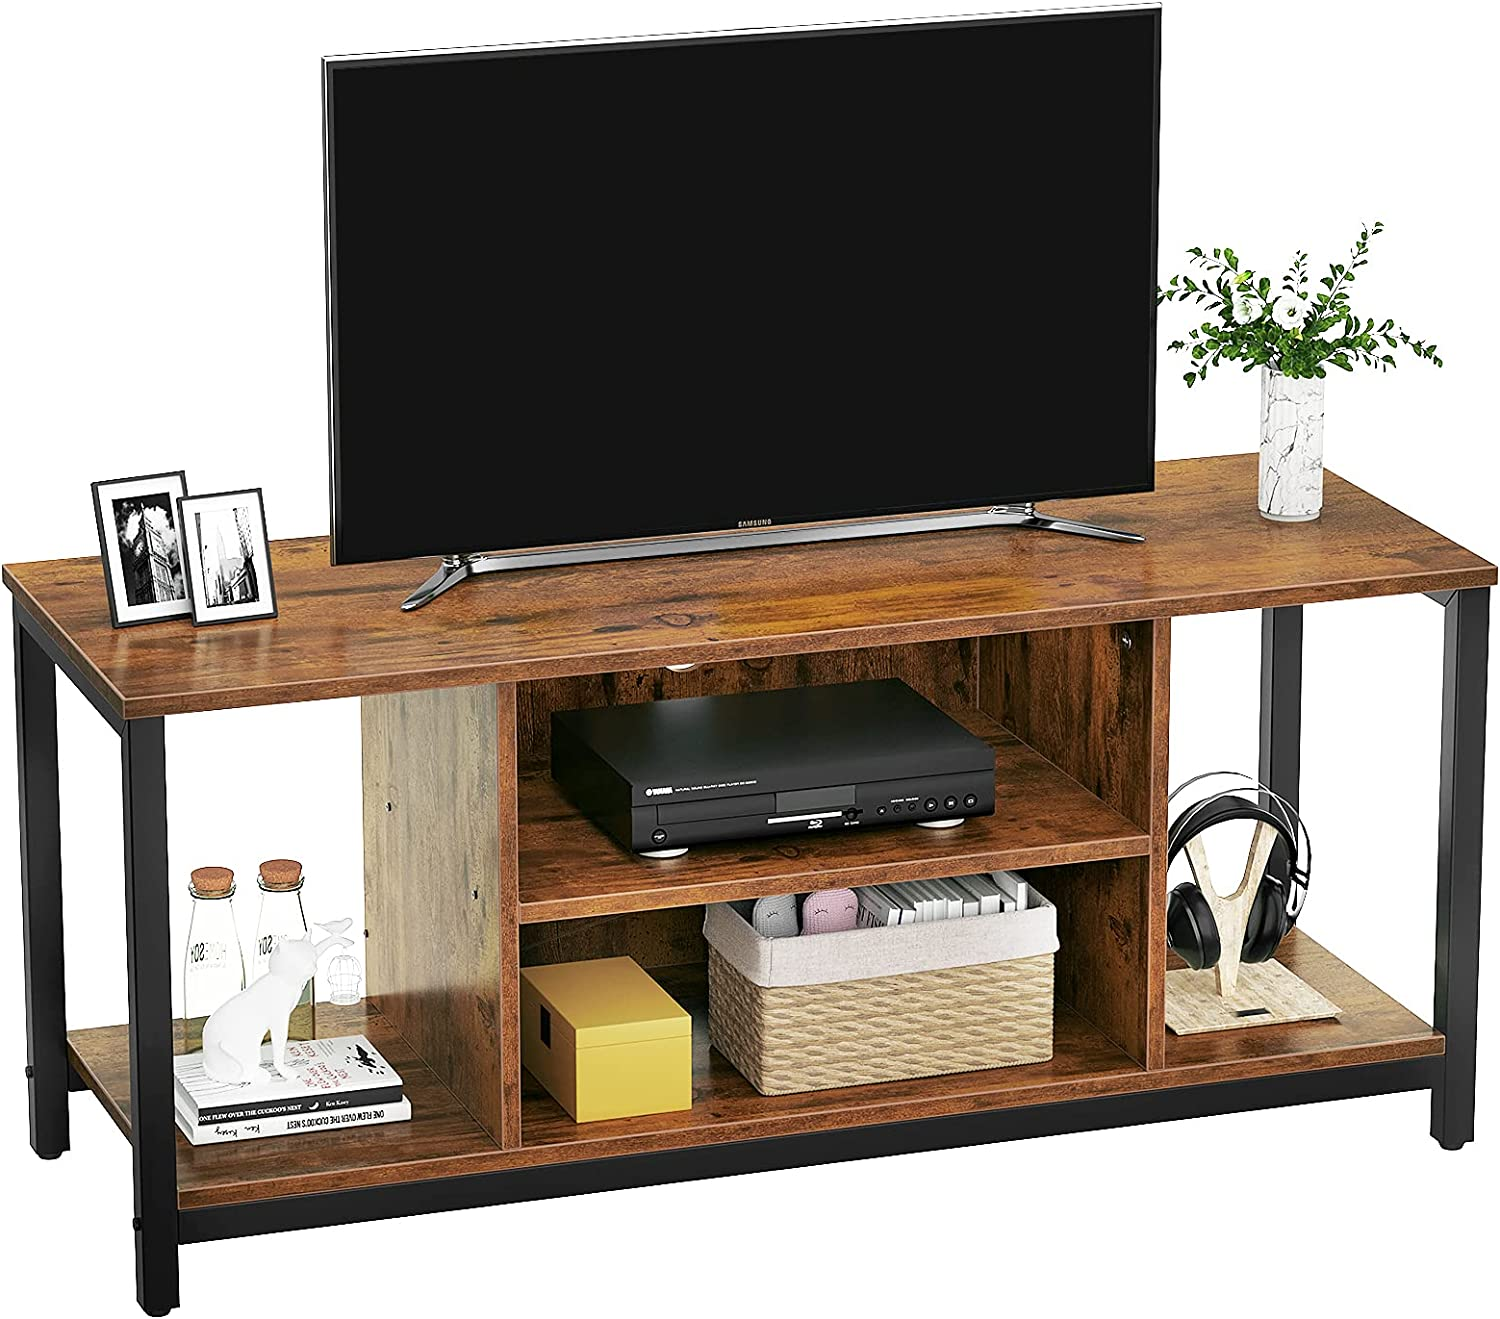 Aheaplus TV Stand TV Cabinet for TV up to 50 In 3 Tier Mid Century Modern TV Stand with Shelving Storage Entertainment Center TV Console Retro Industrial TV Stand for Living Room Bedroom, Rustic Brown